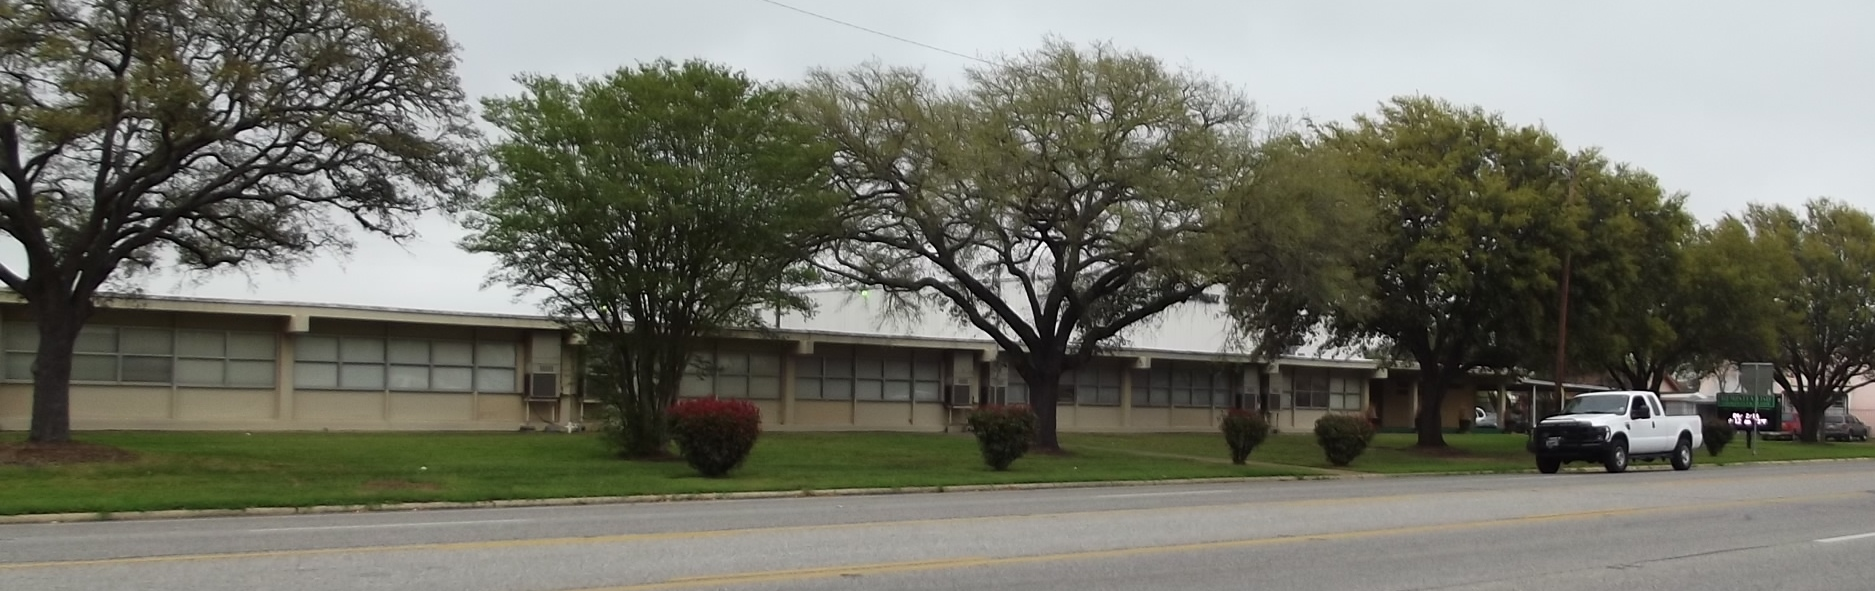 HISD Administrative Building